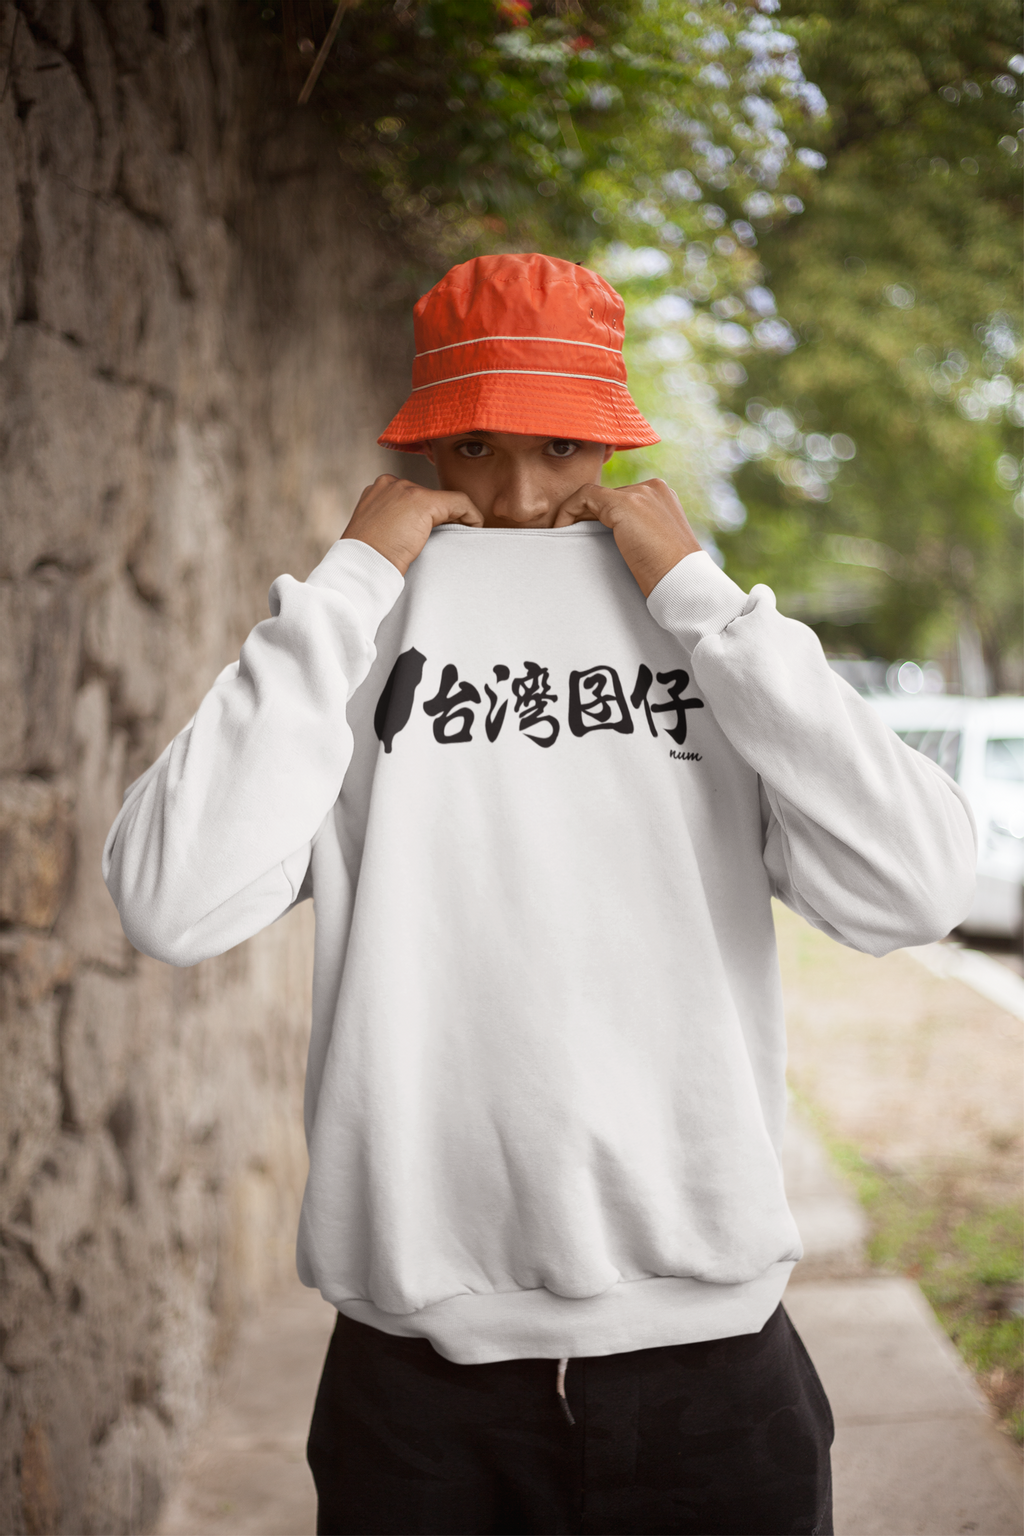 sweatshirt-mockup-of-a-man-covering-his-face-by-a-stone-wall-21068.png